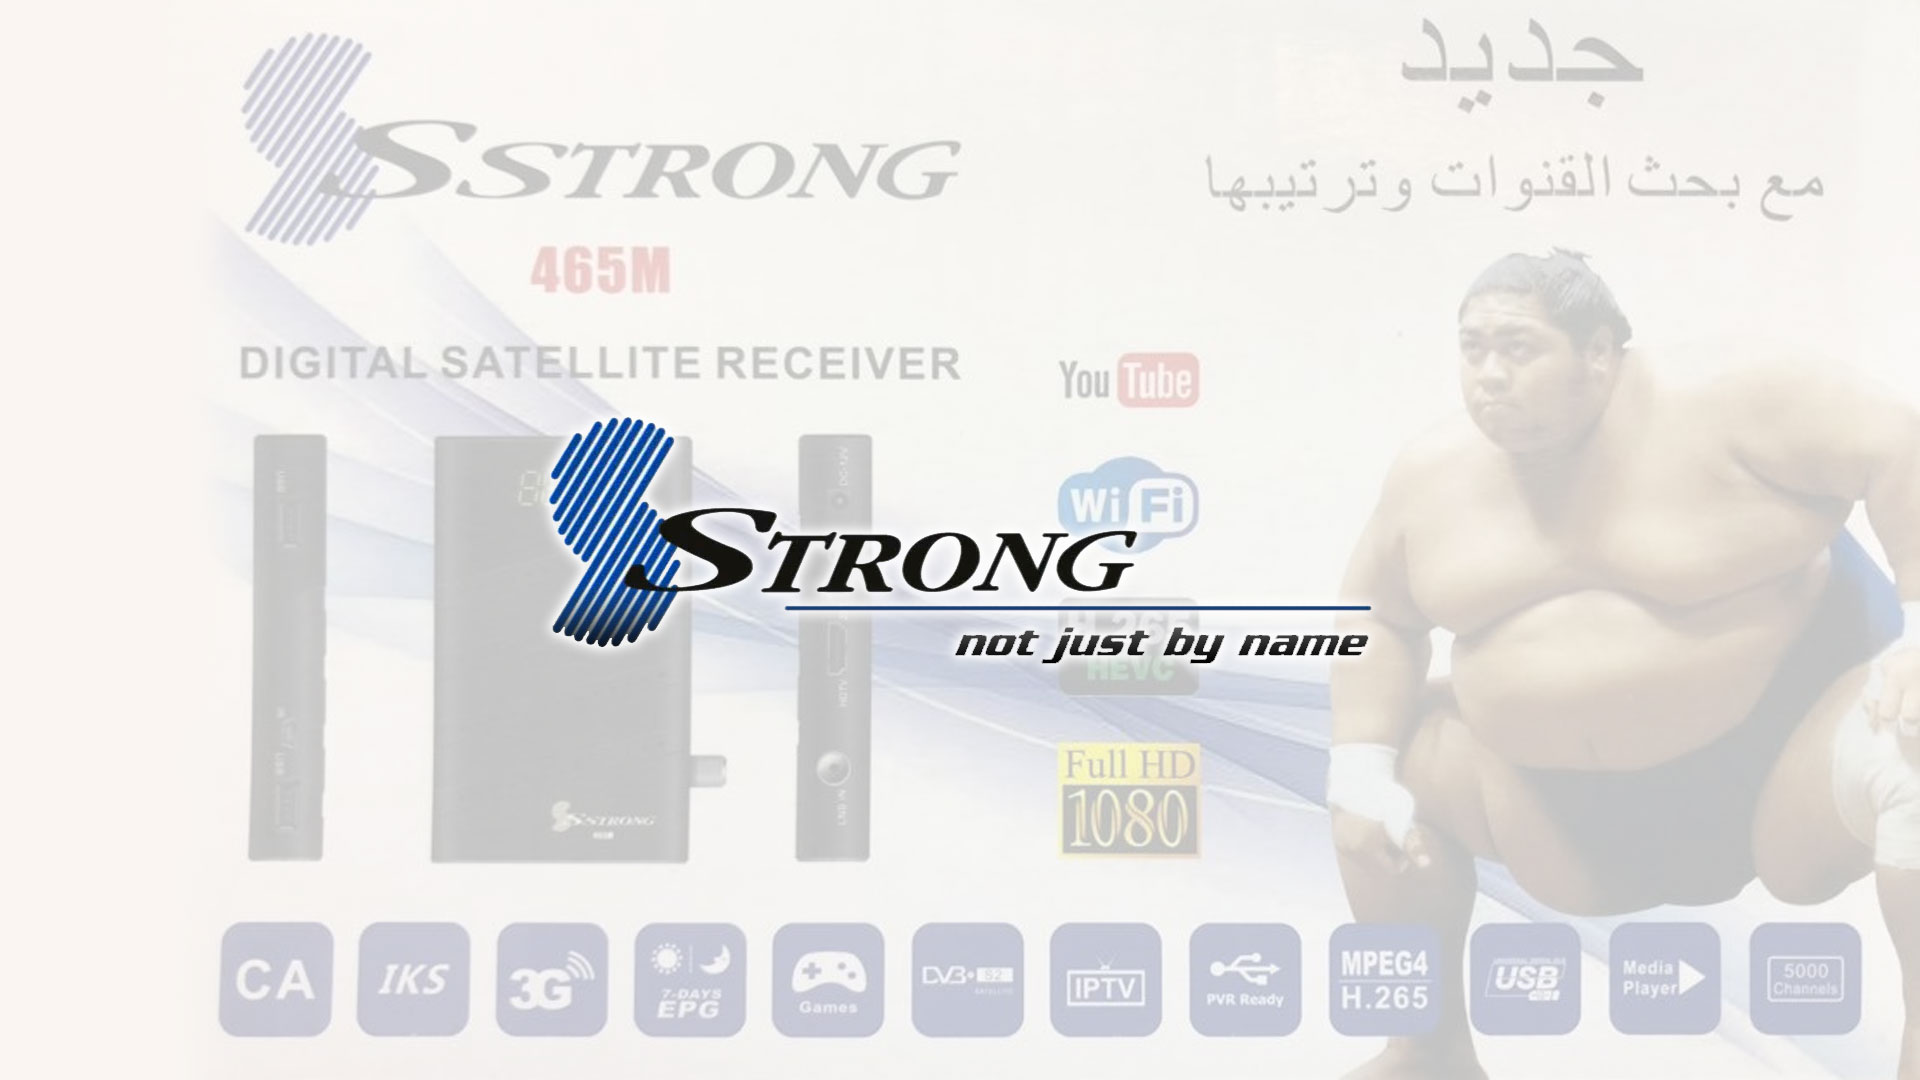 Download Software SStrong 465M HD New Update Firmware Receiver